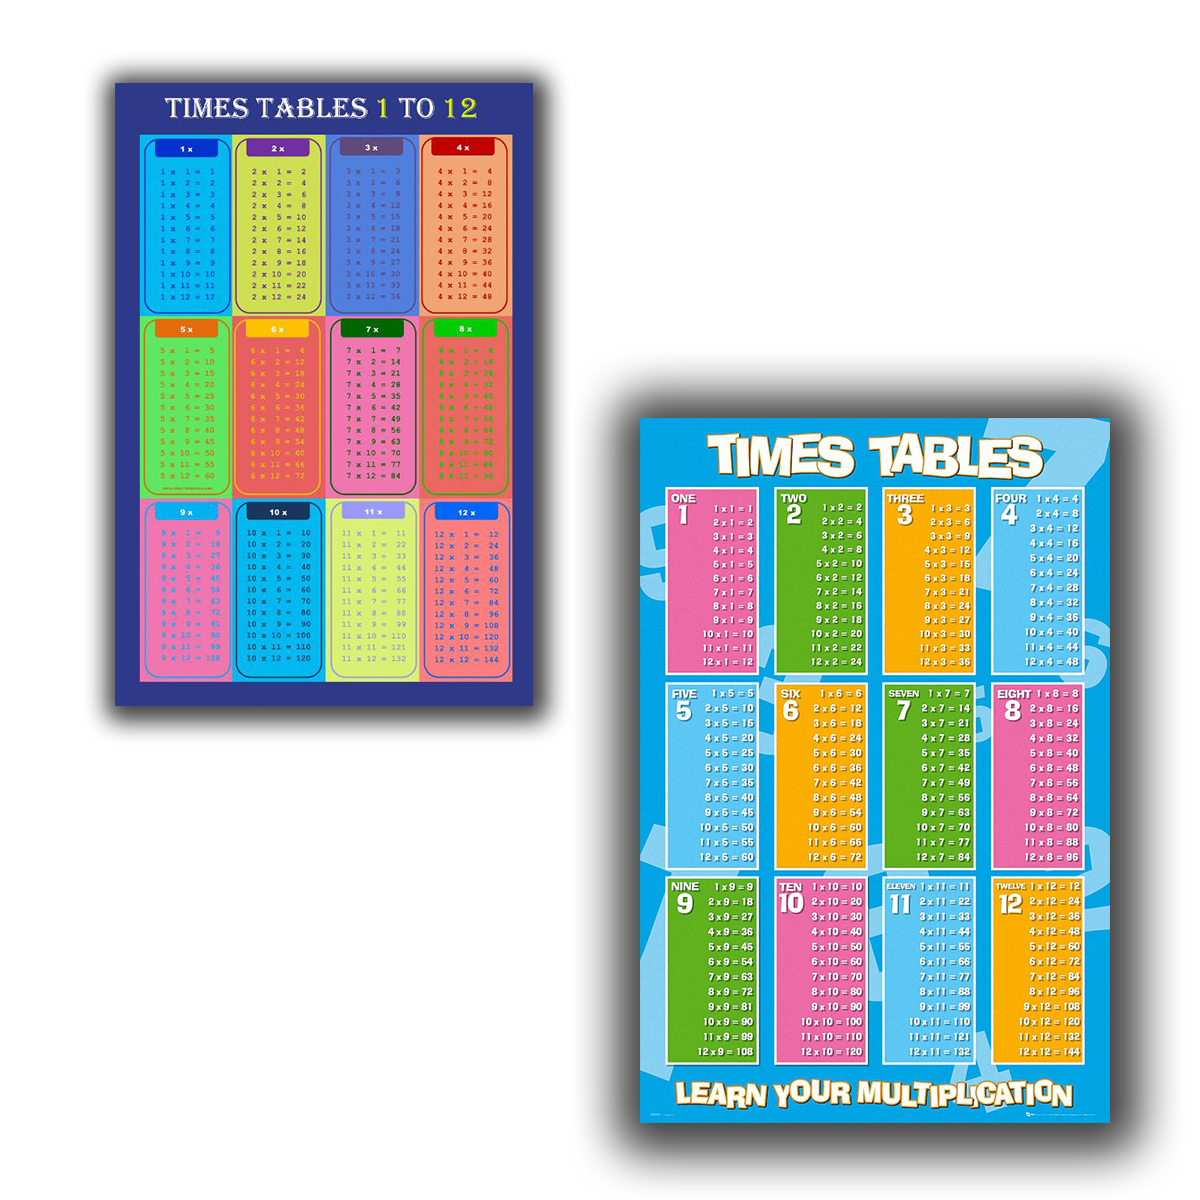 times tables 1 to 12 silk posters scientific education picture for children s room decor wall decor poster frame posters